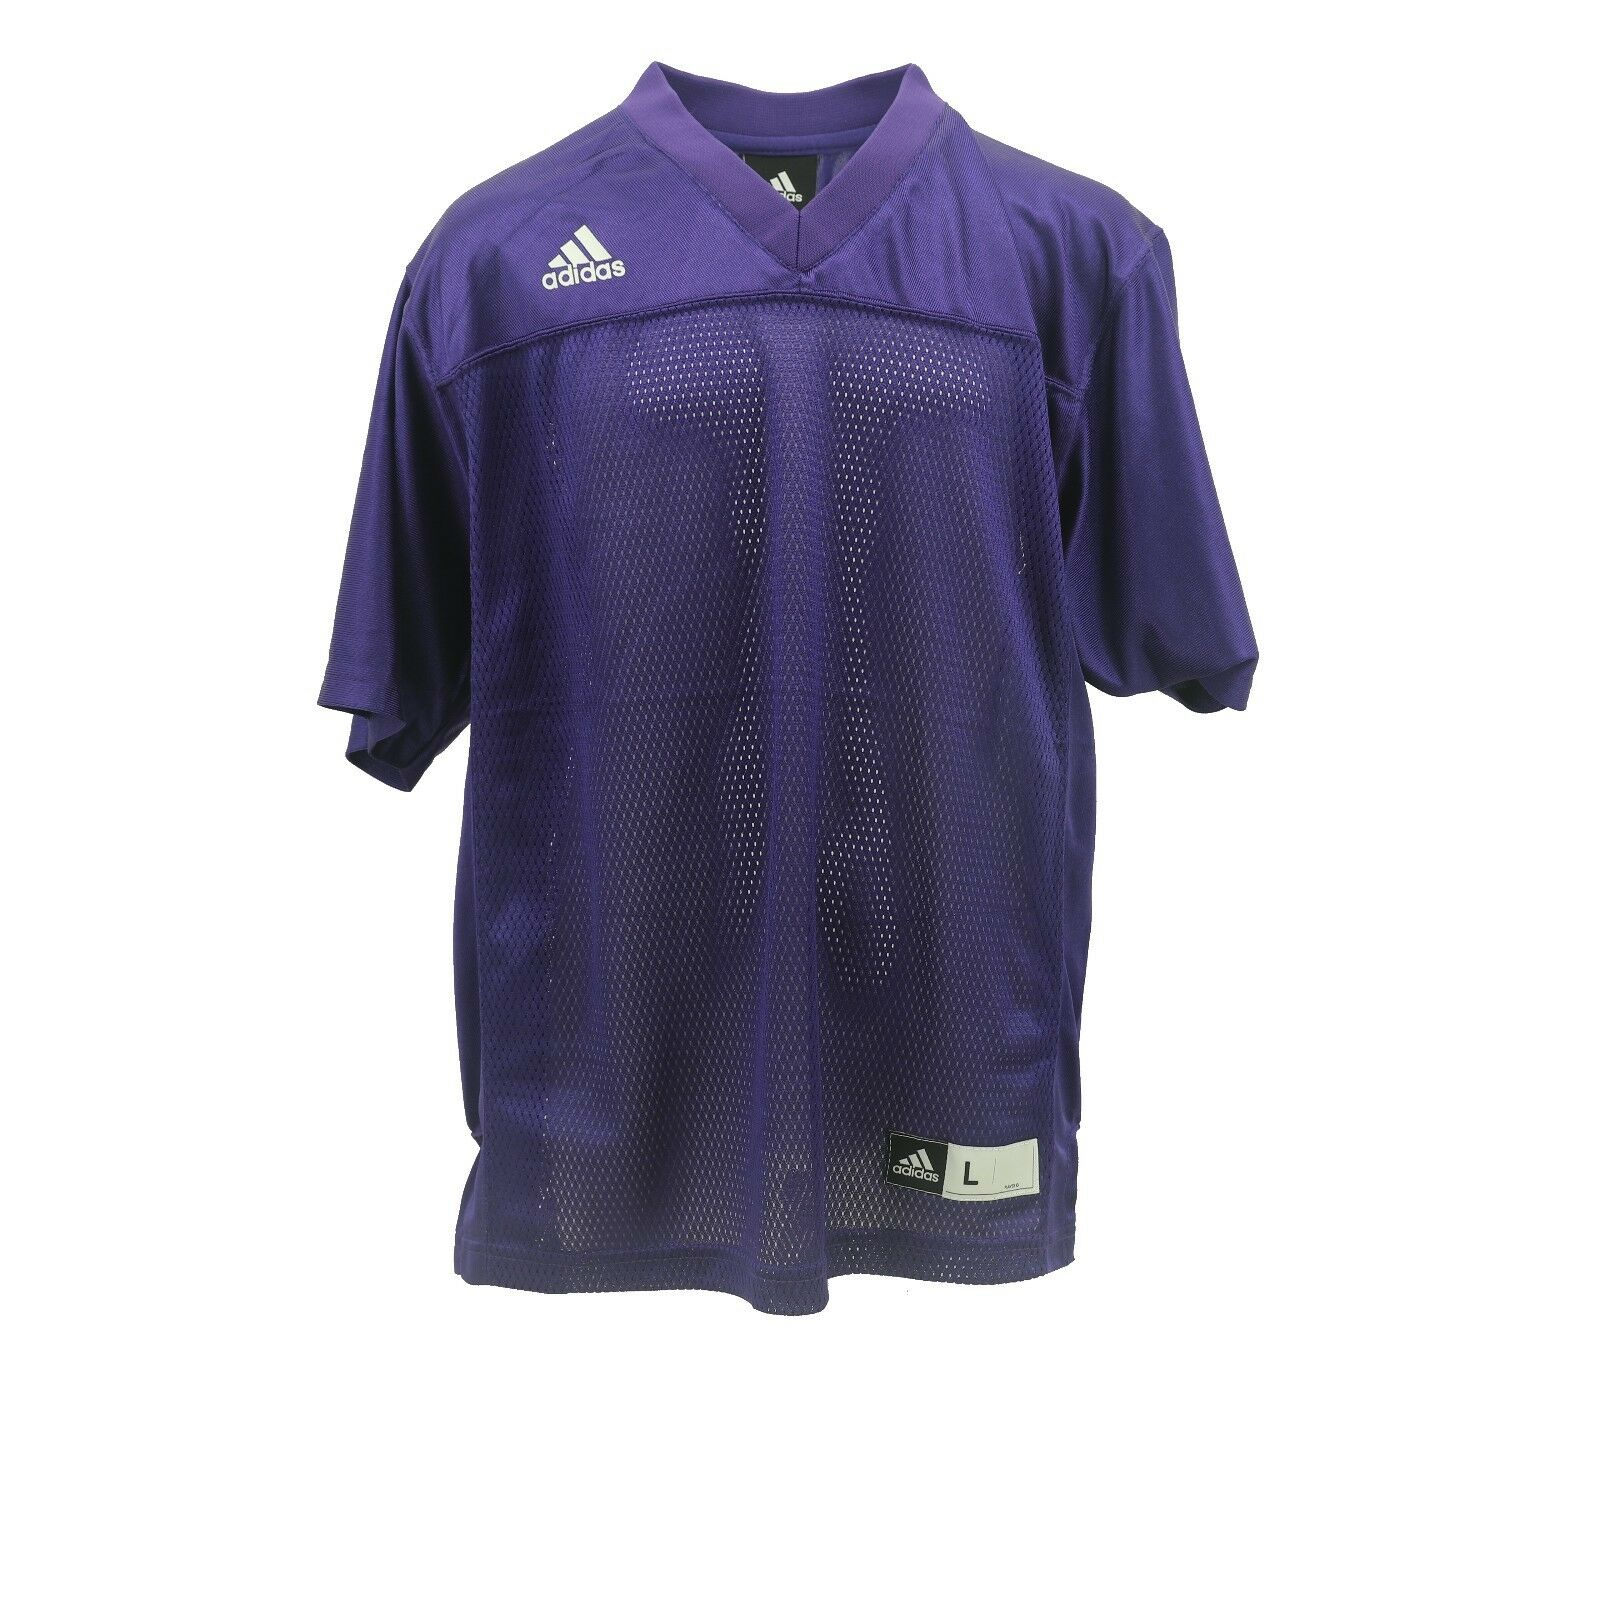 NCAA Official Adidas Kids Youth Size Football Blank Purple J